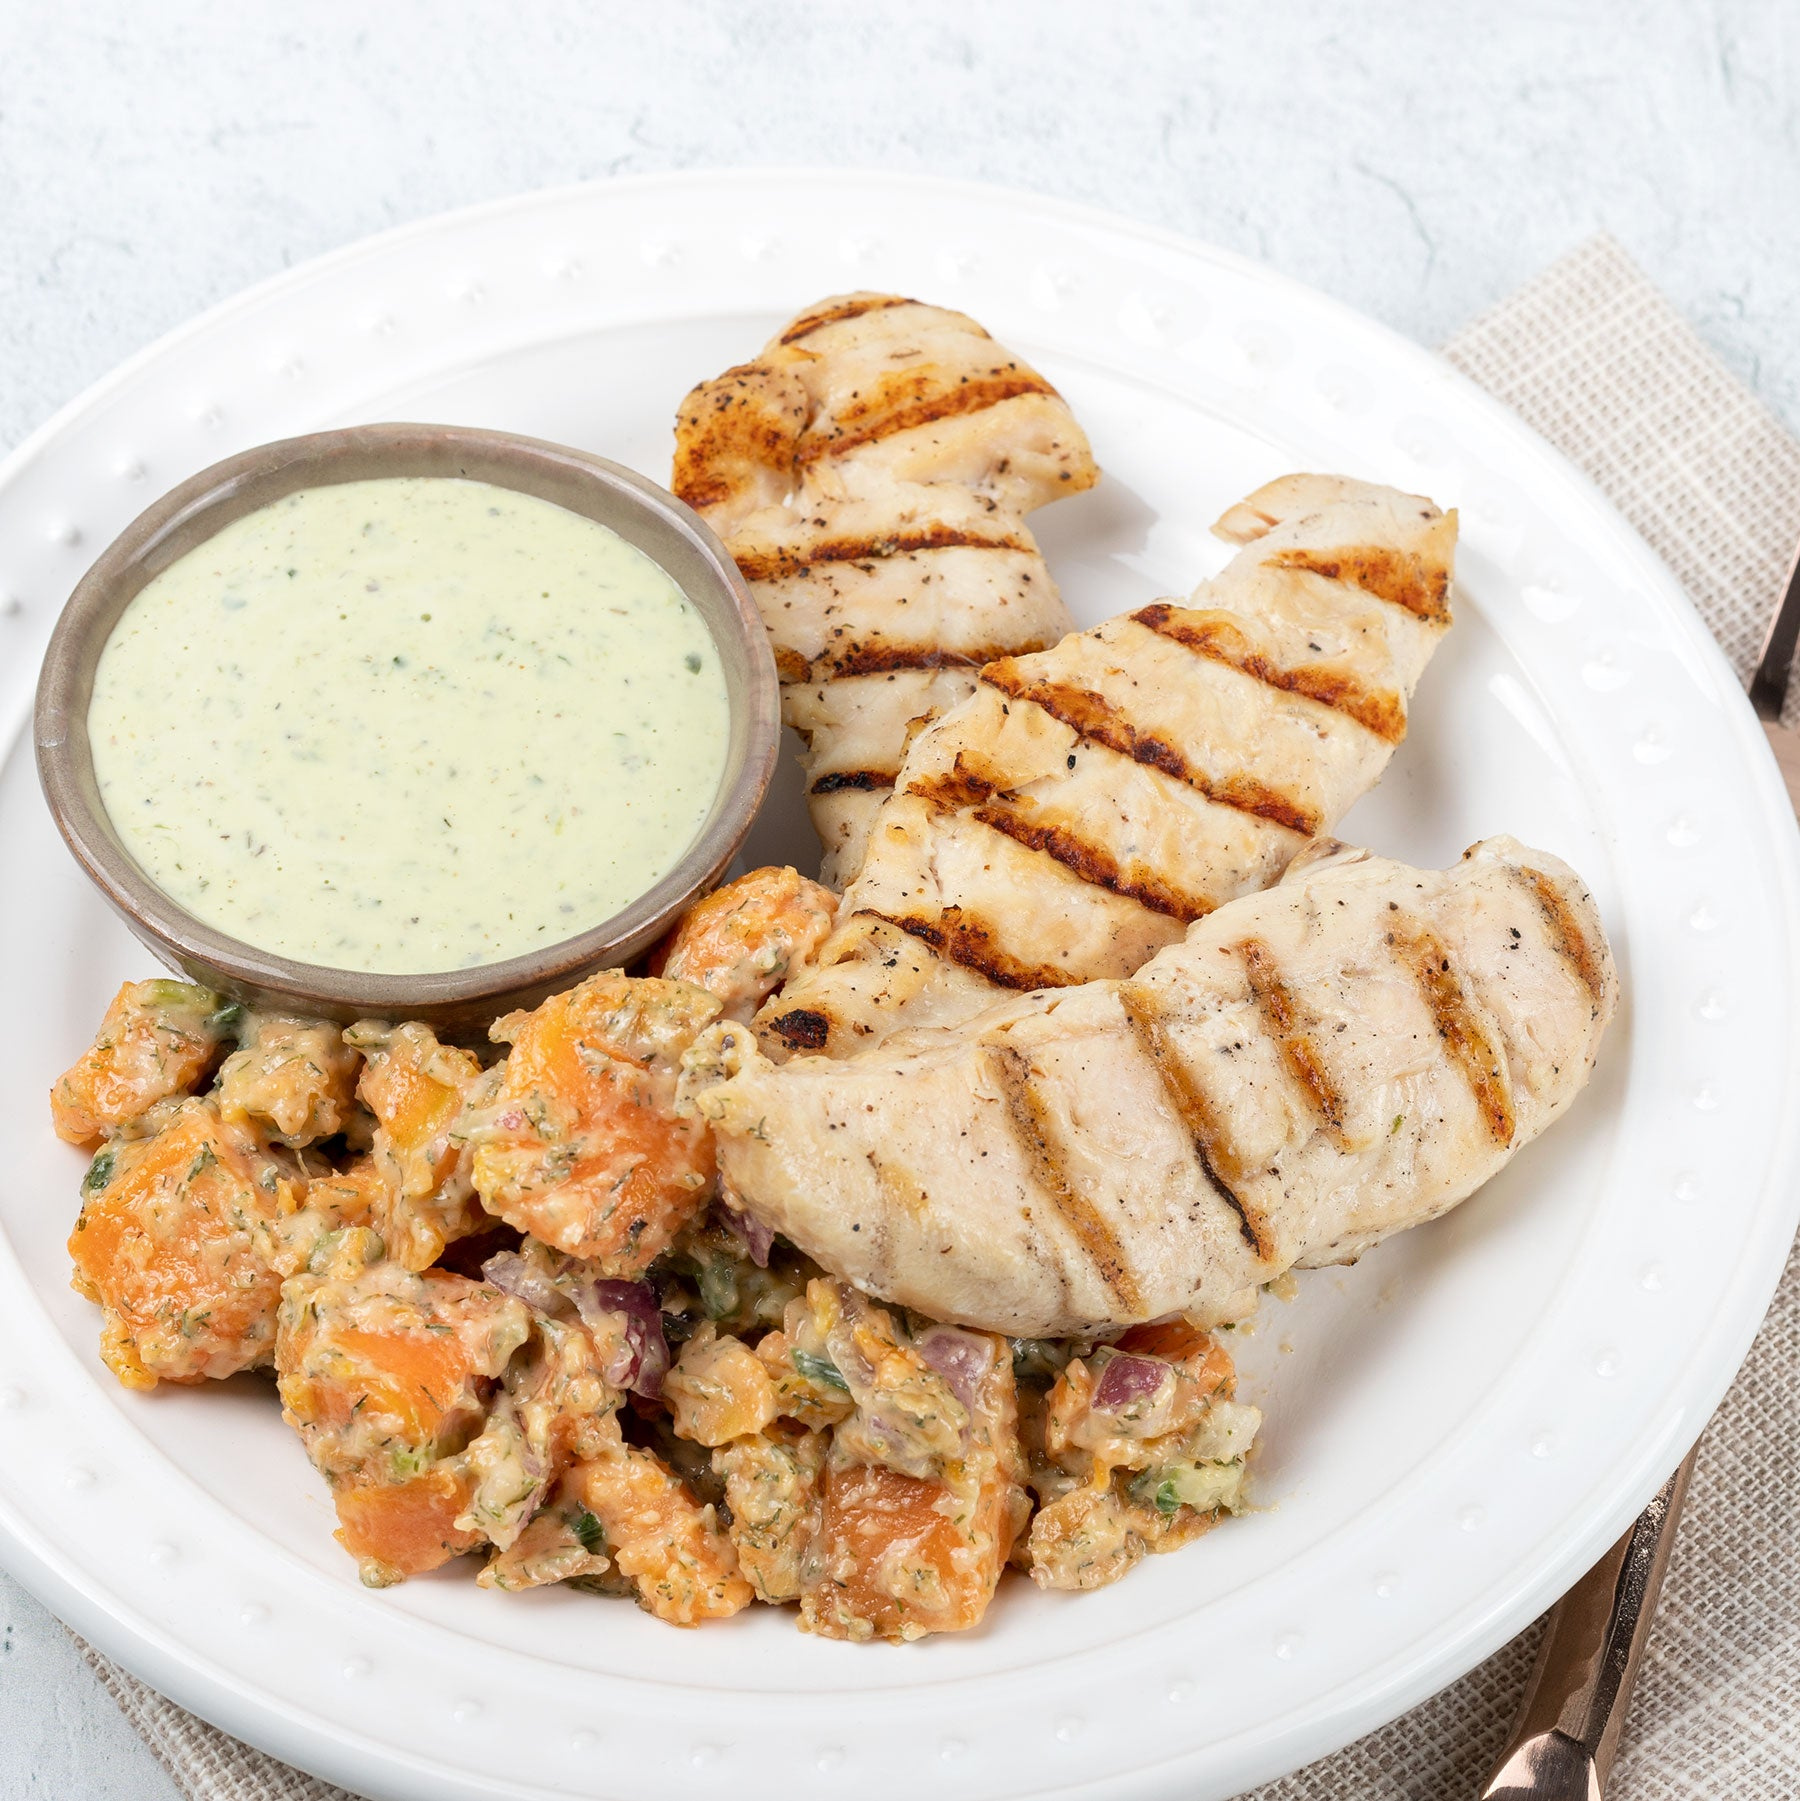 Flame-Grilled Chicken Tenders with Sweet Potato Salad